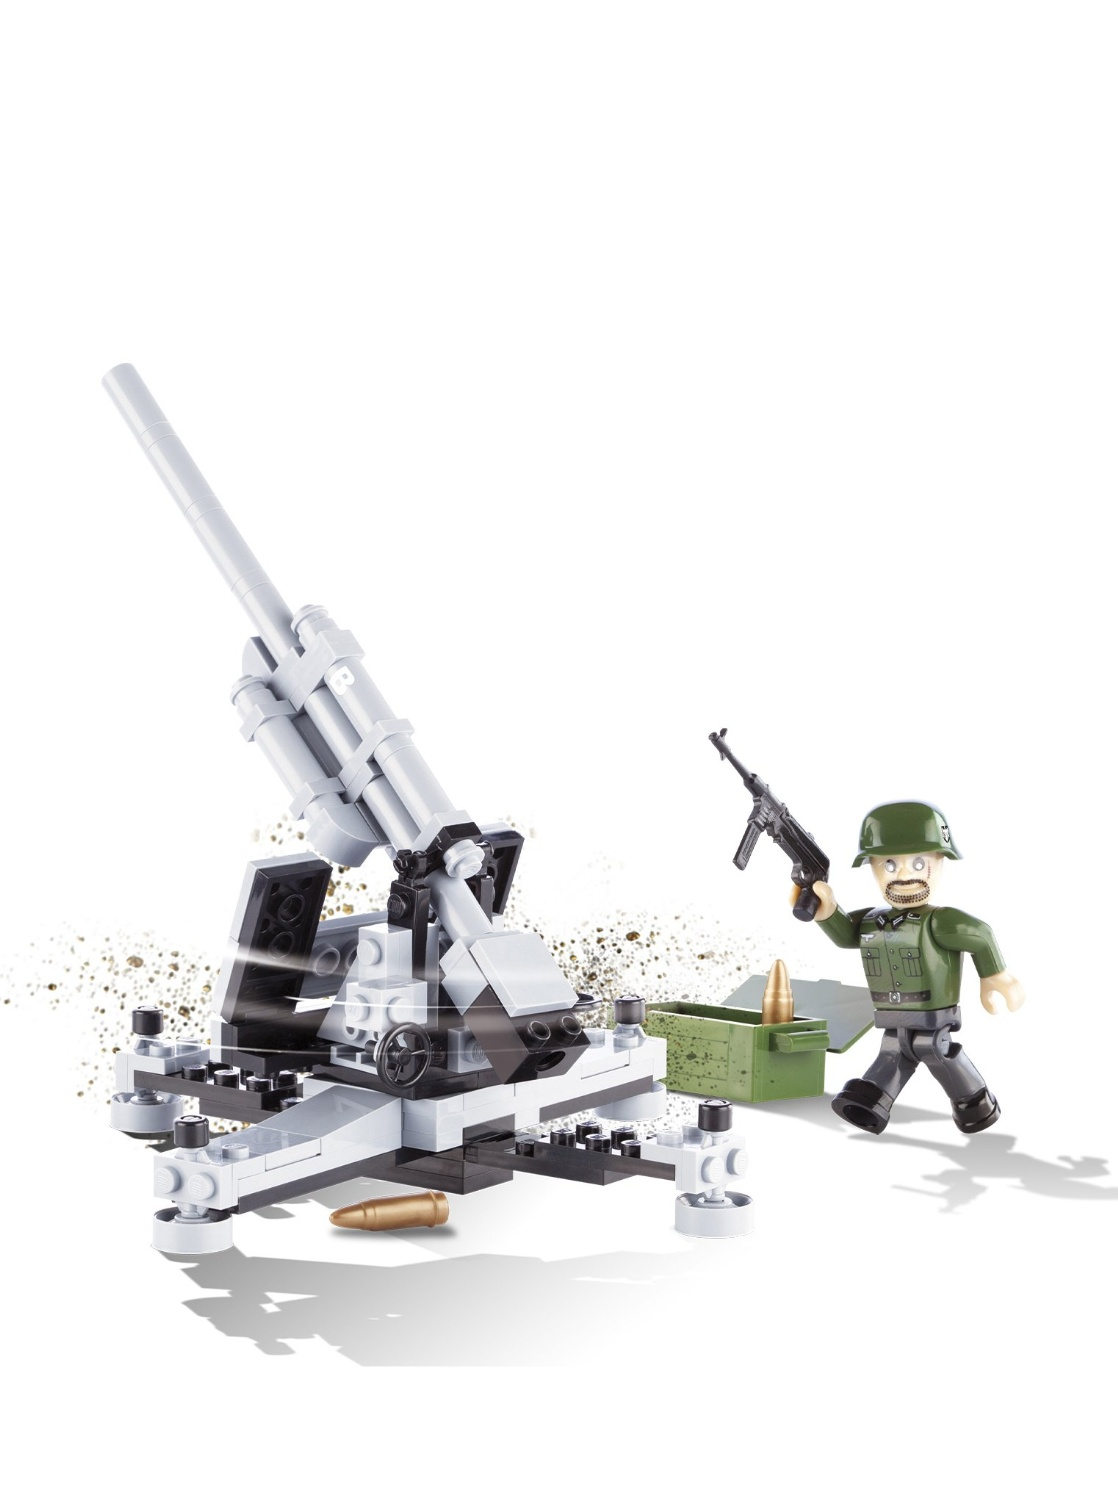 Flak 36/37 88mm (2343) Cobi Small Army WWII